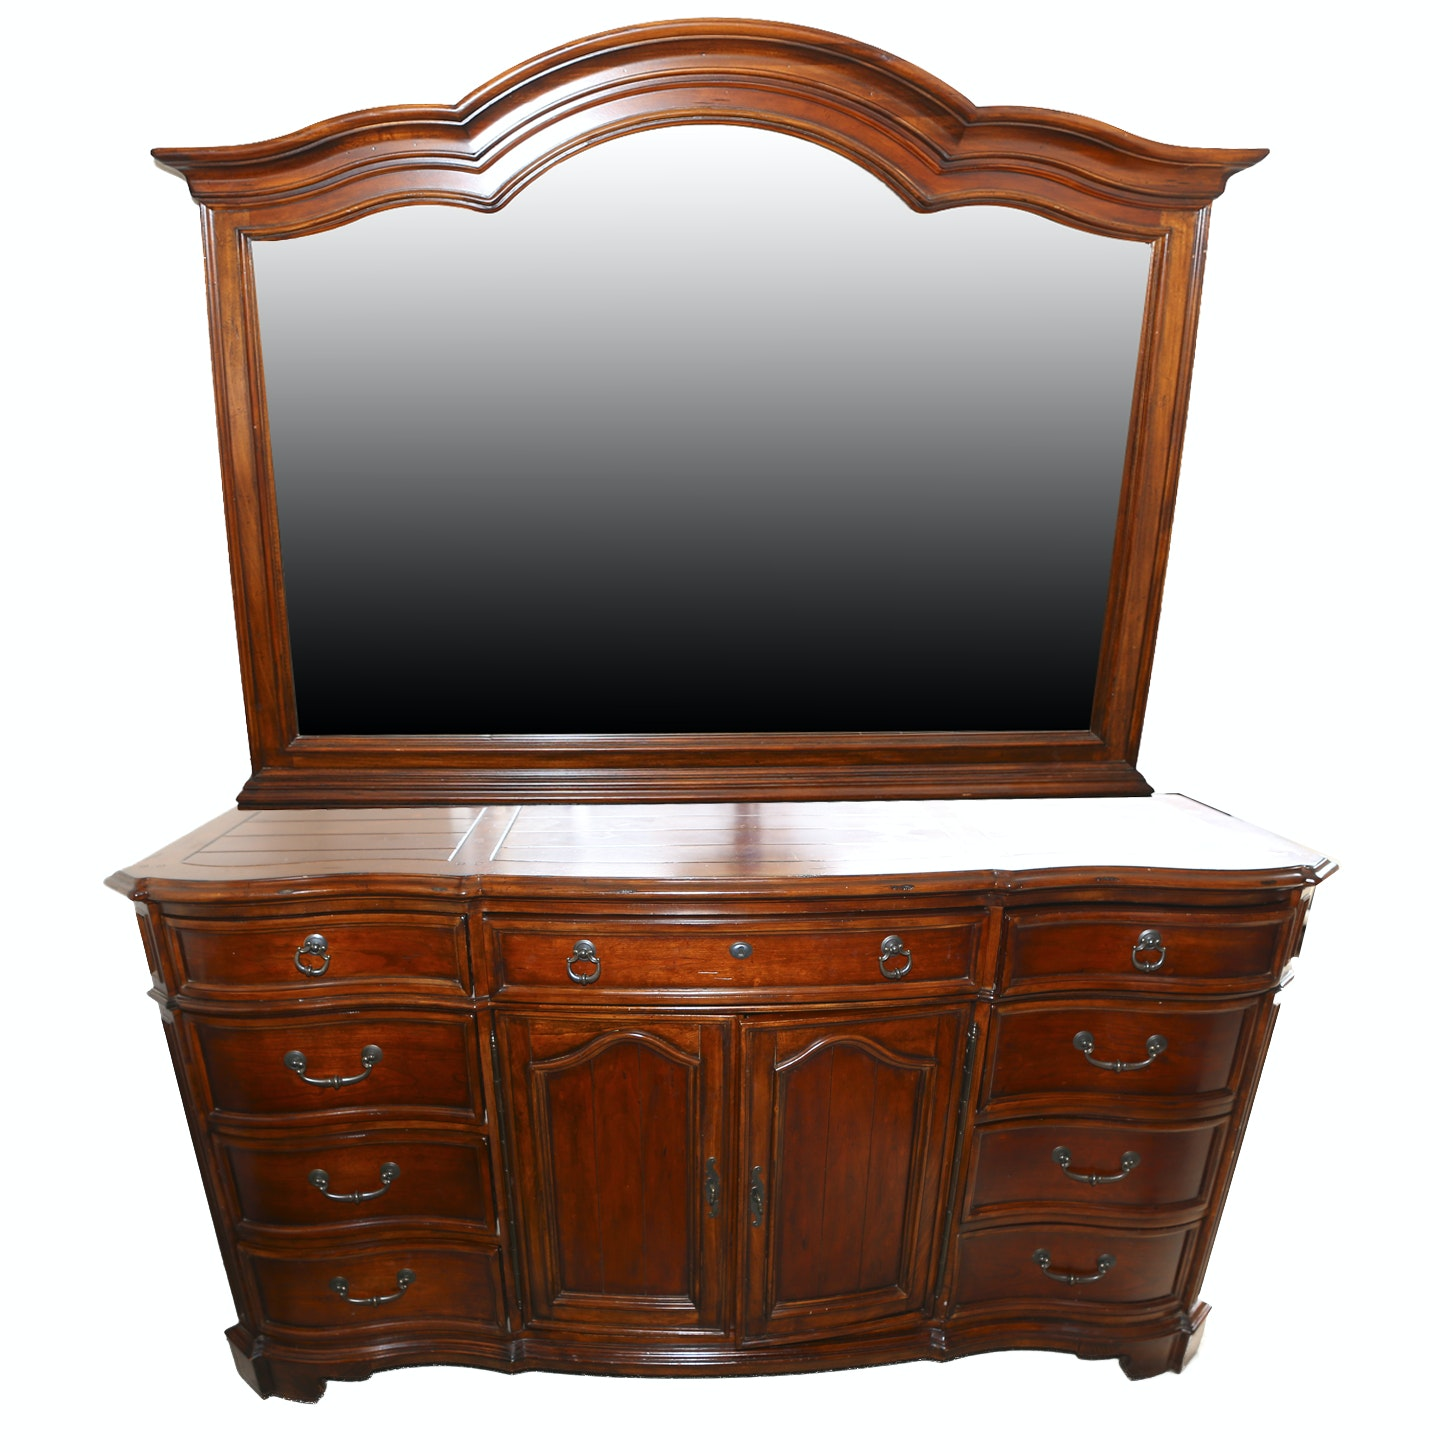 Contemporary Serpentine-Front Dresser With Mirror